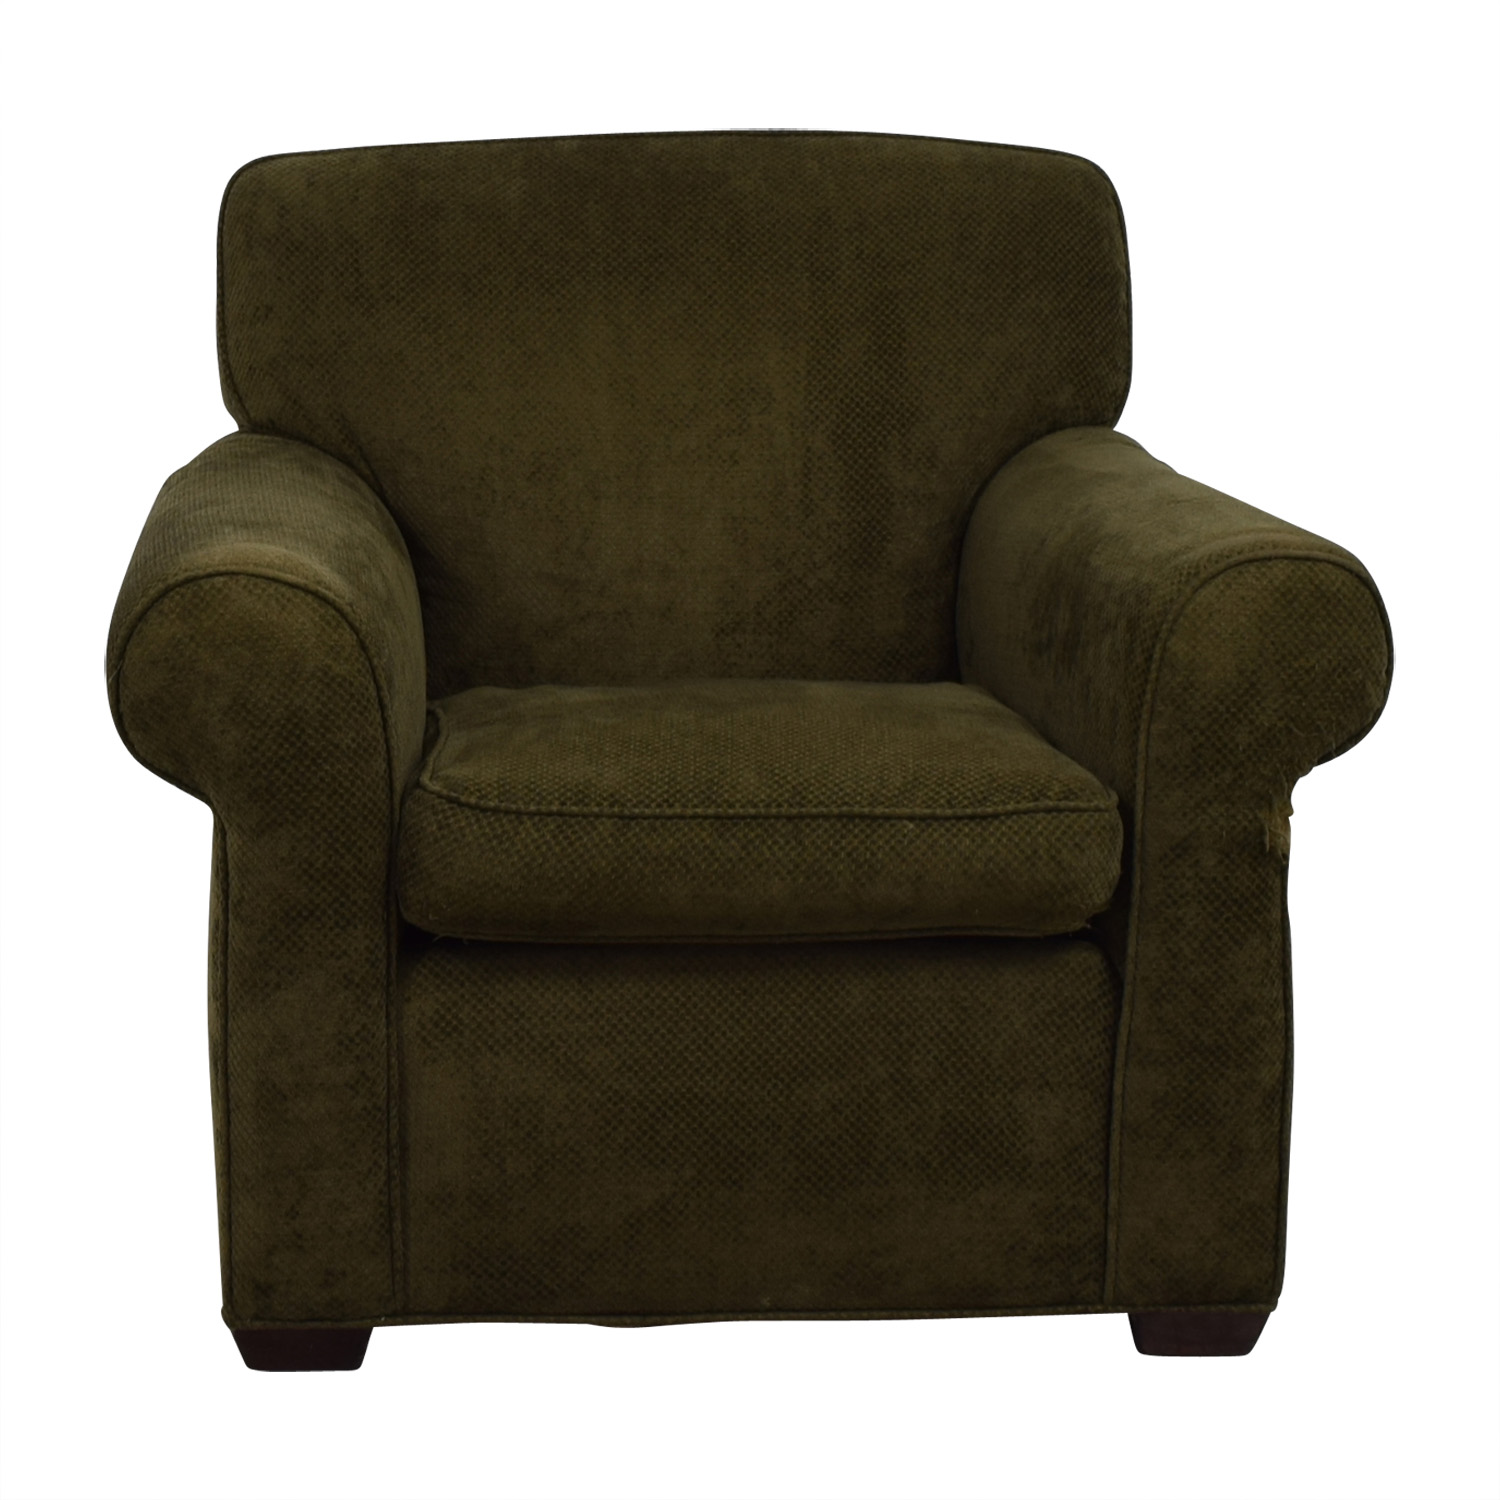 olive green accent chair office hydraulic chairs used for sale